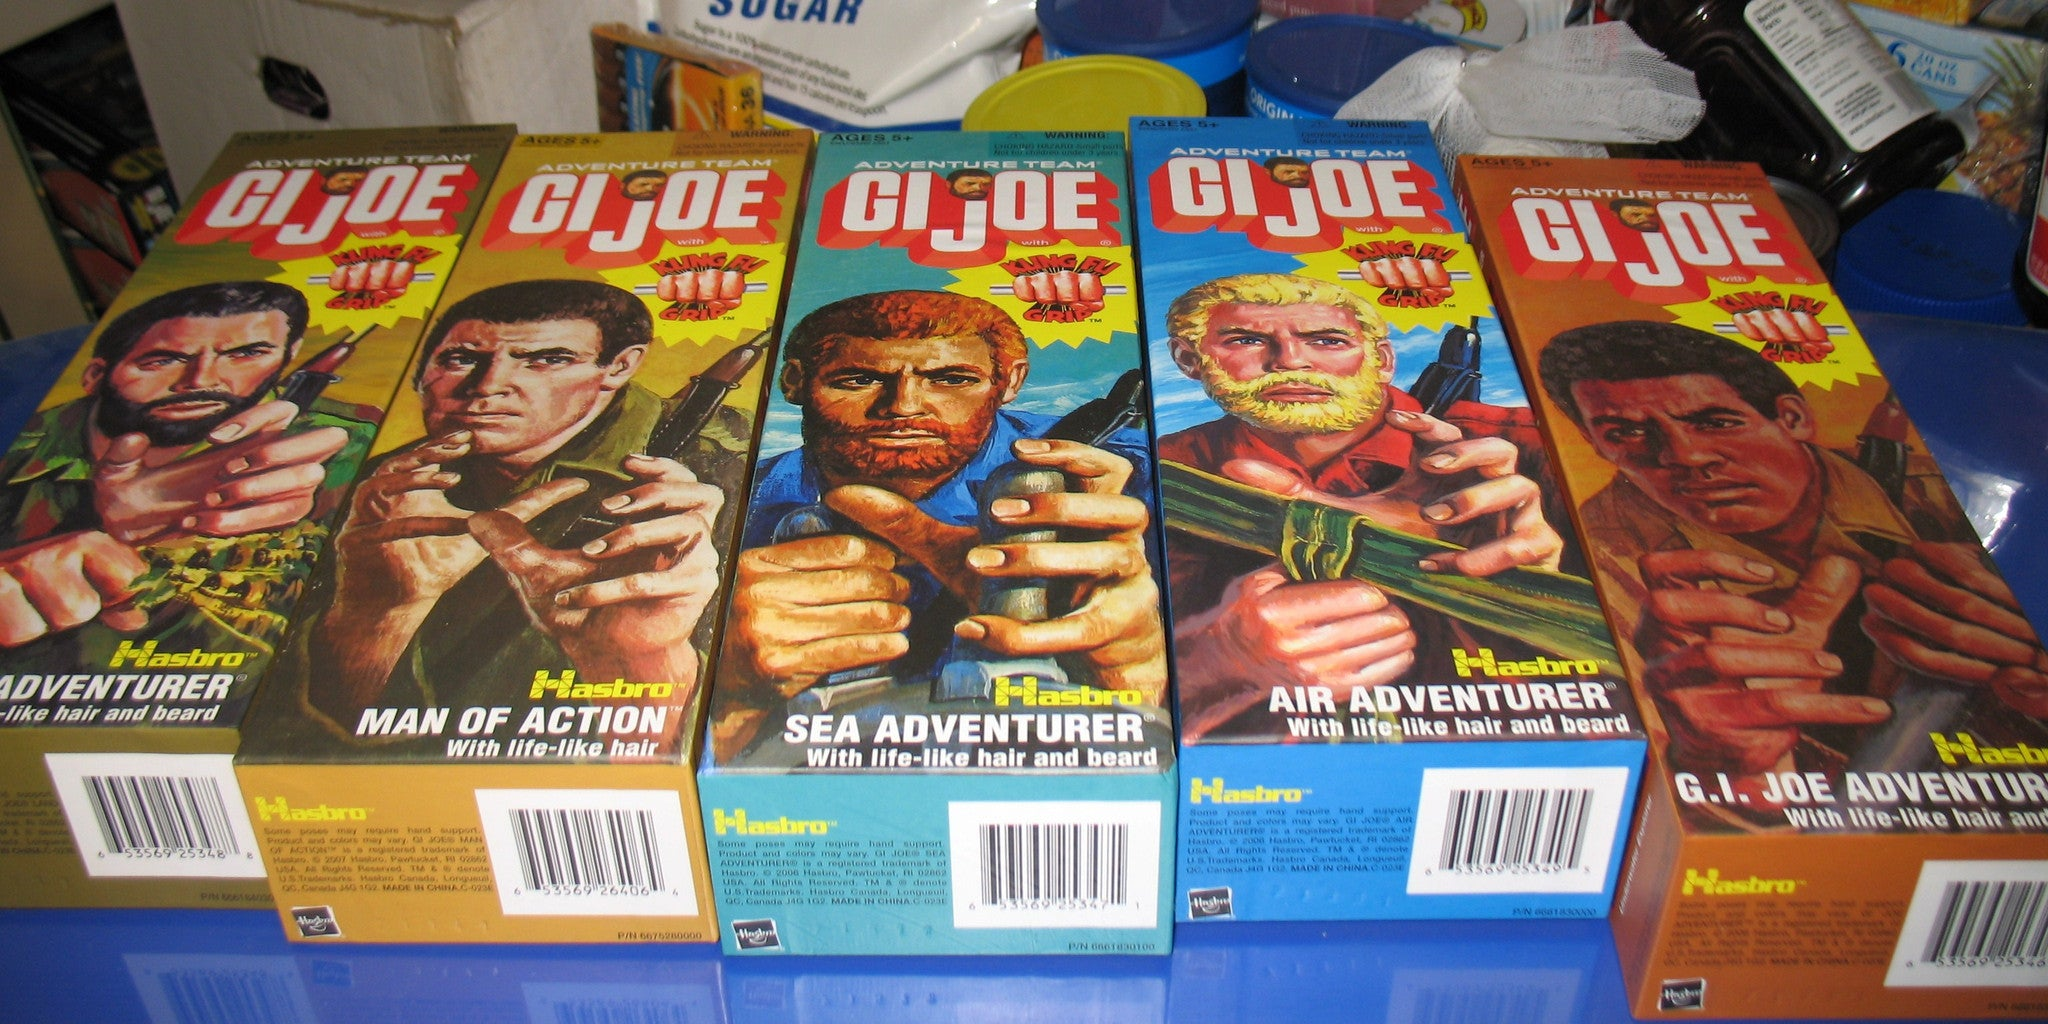 D100 5 full sets brand new unused sealed Hasbro GI JOE Walmart Adventure Team Figures!